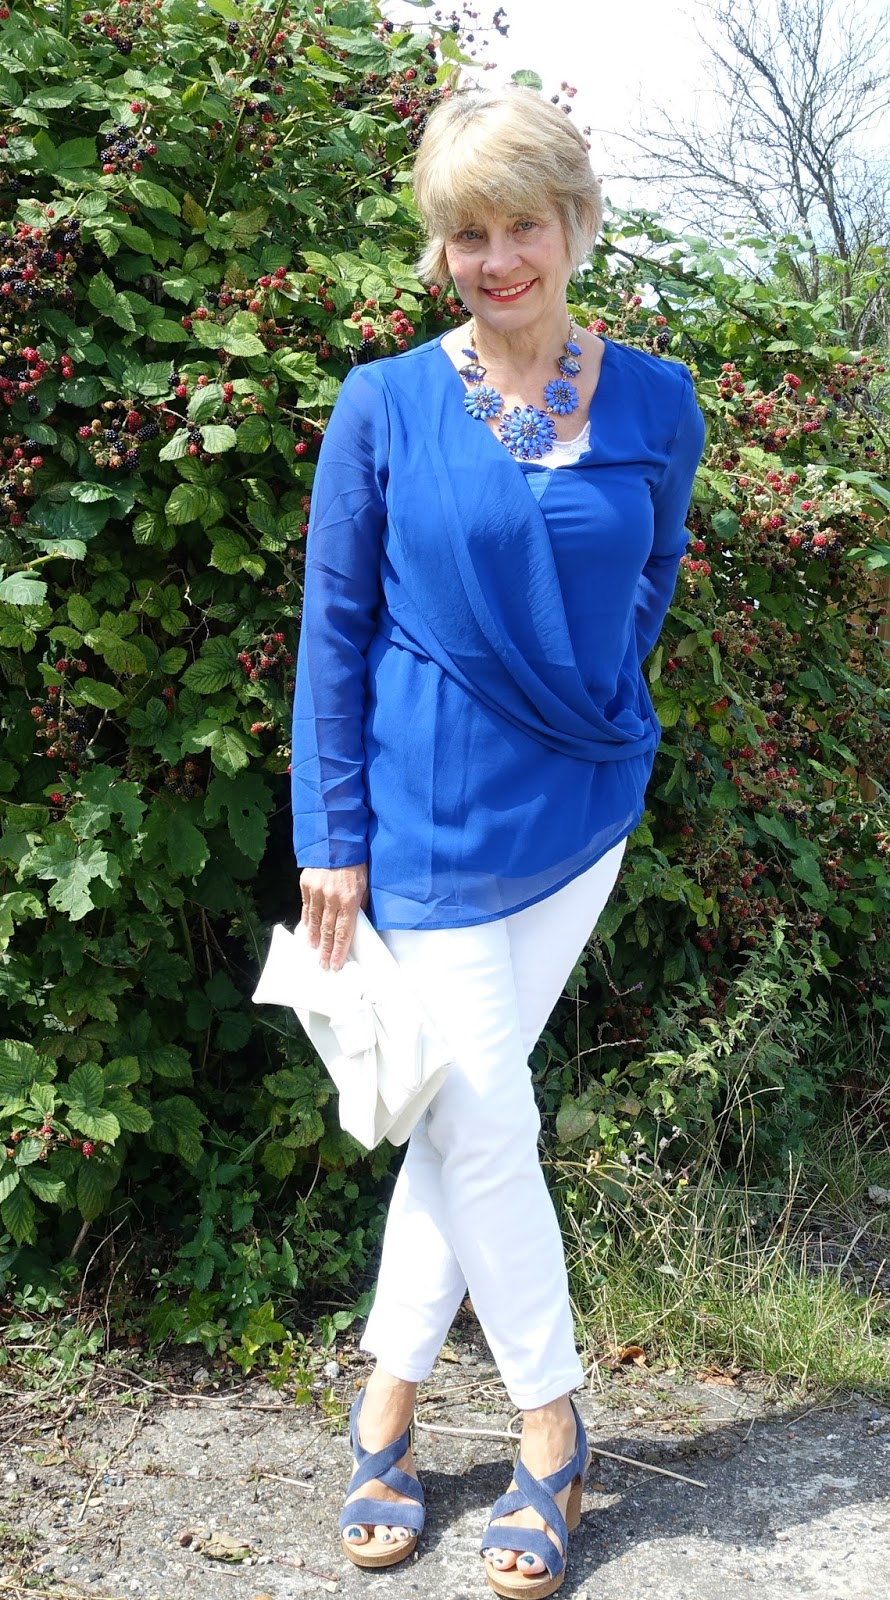 A drapey cobalt blue top will take you anywhere: wear with white jeans for a casual vibe or add palazzos for evening